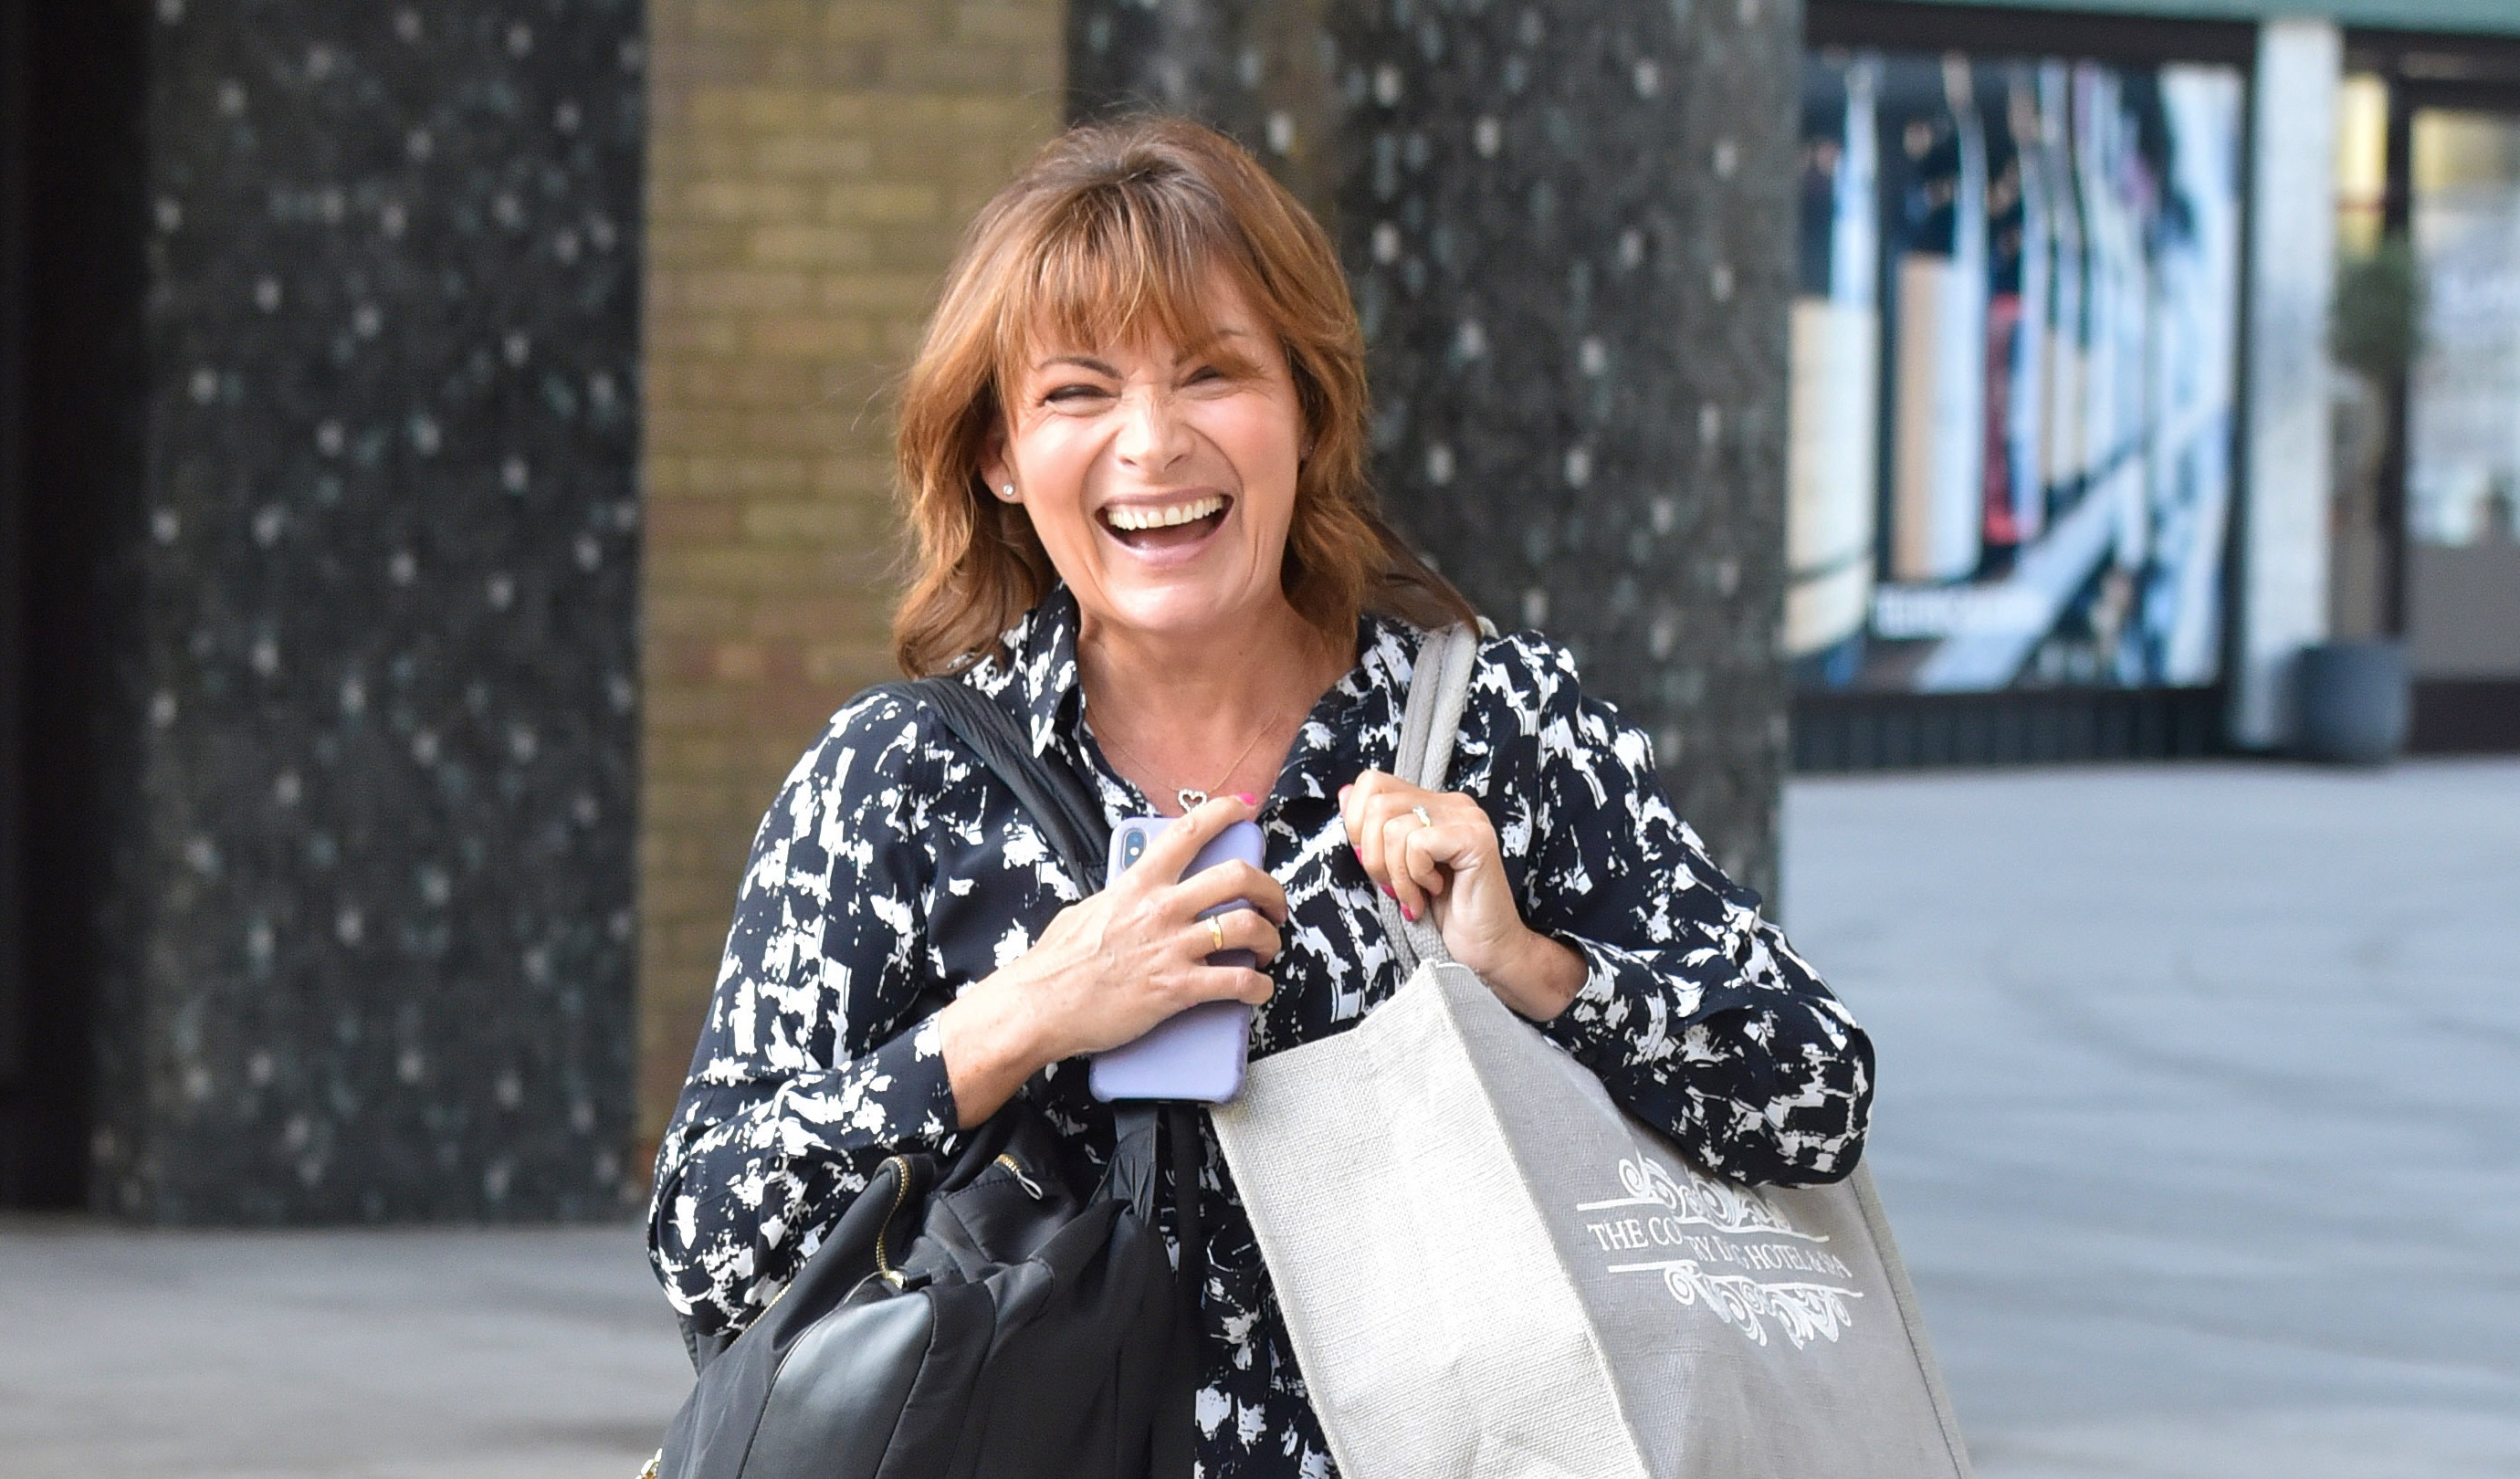 Lorraine Kelly in drag explaining the term 'power bottom' is everything